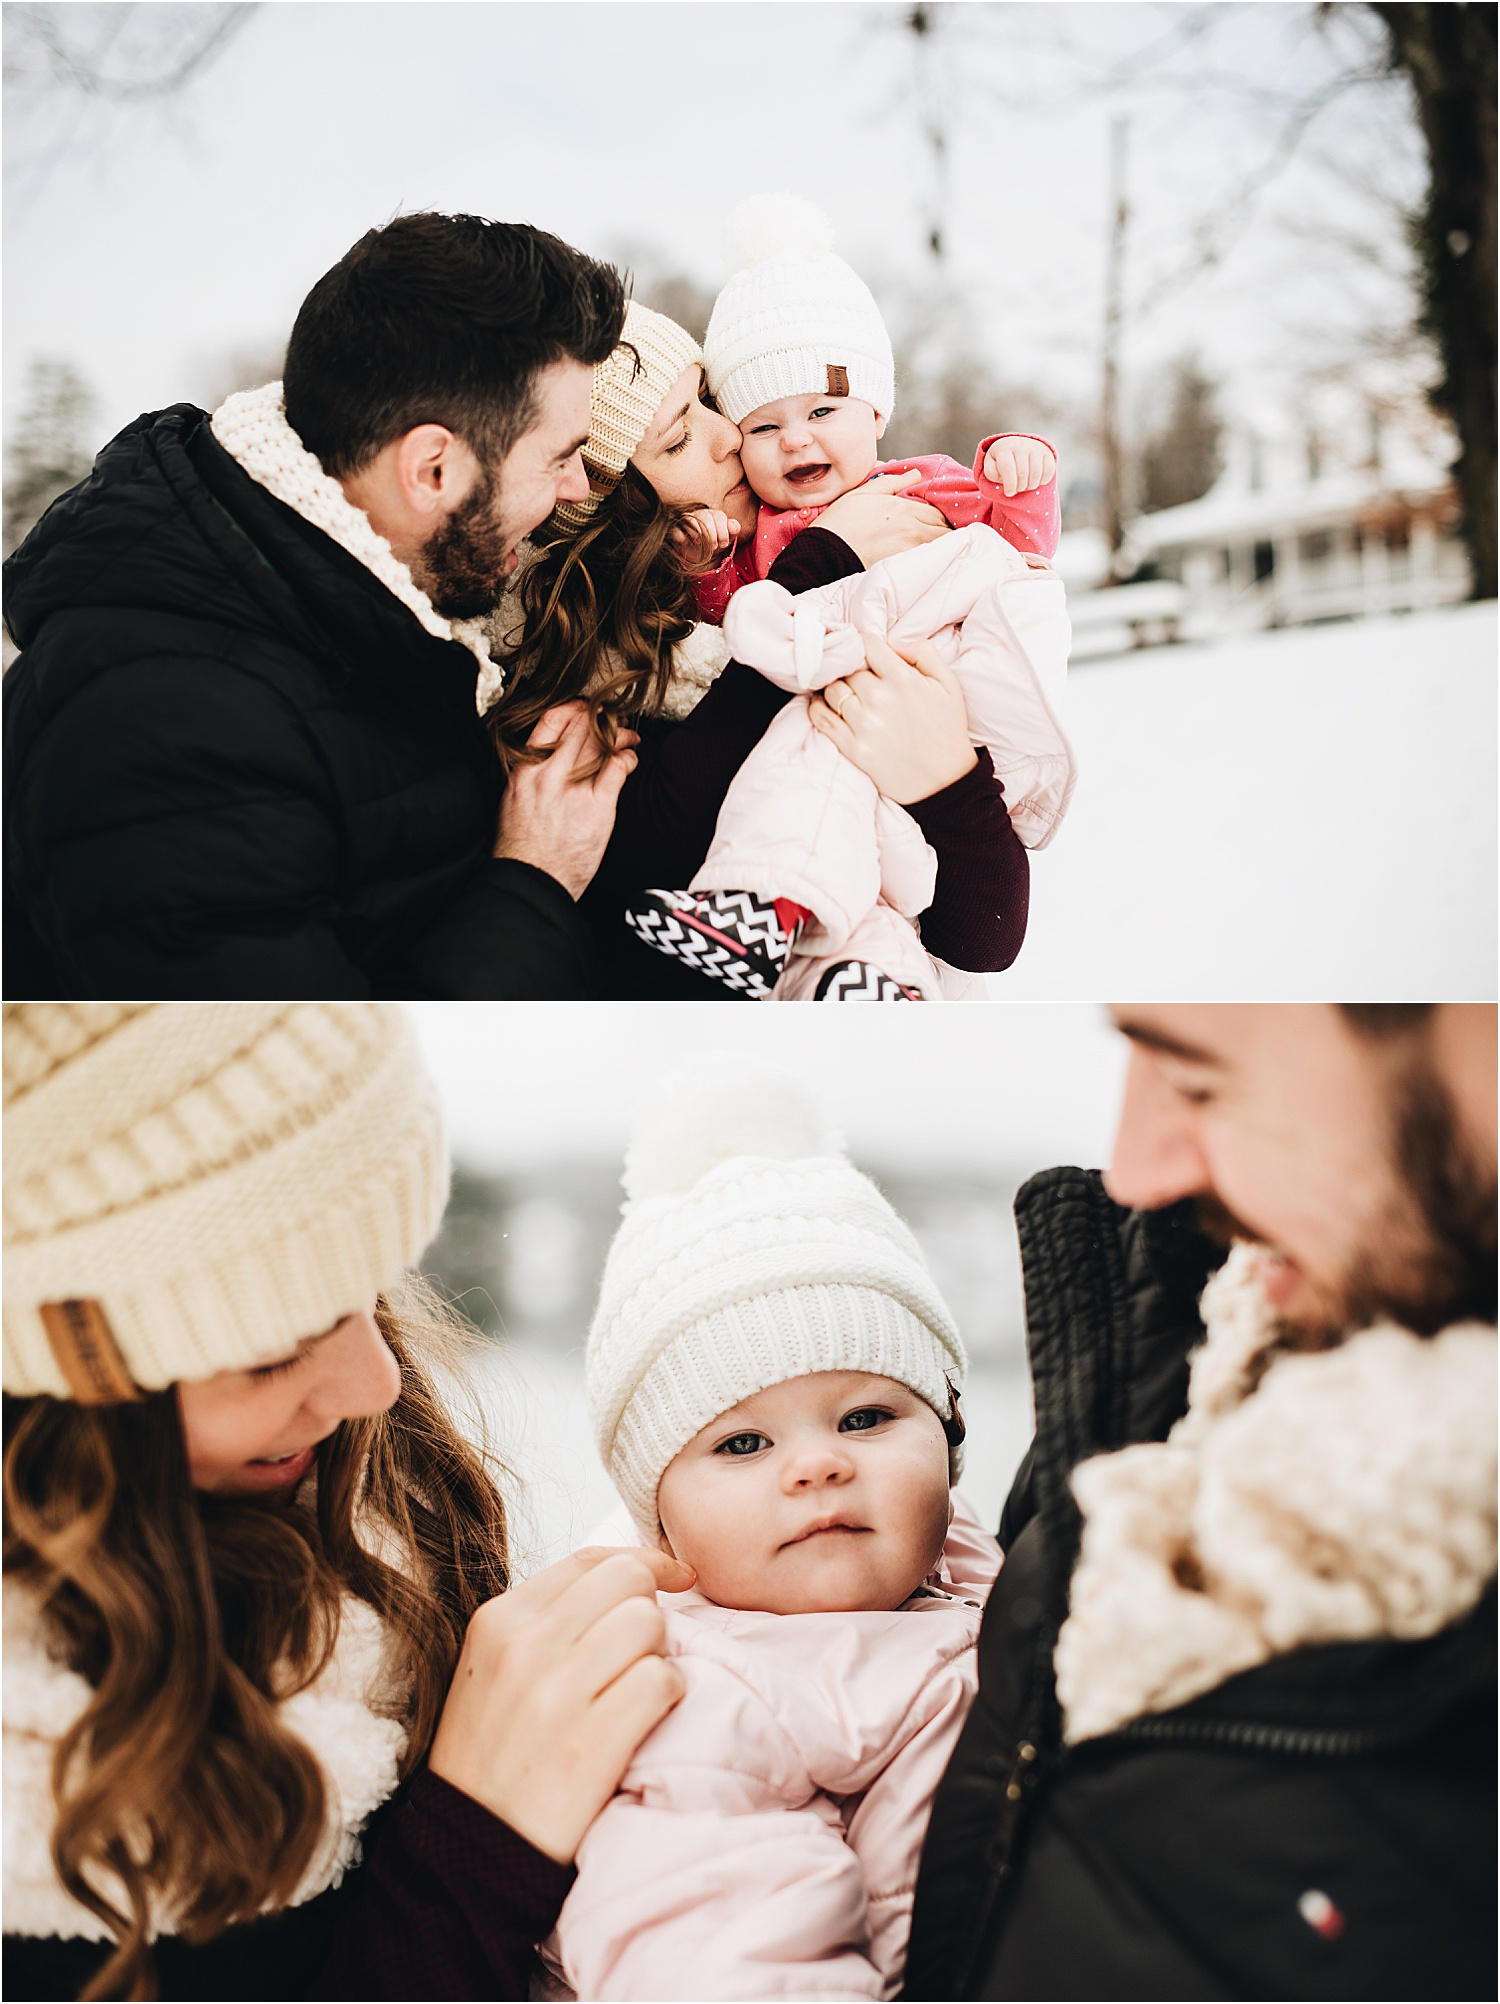 December Family Photos in Snow